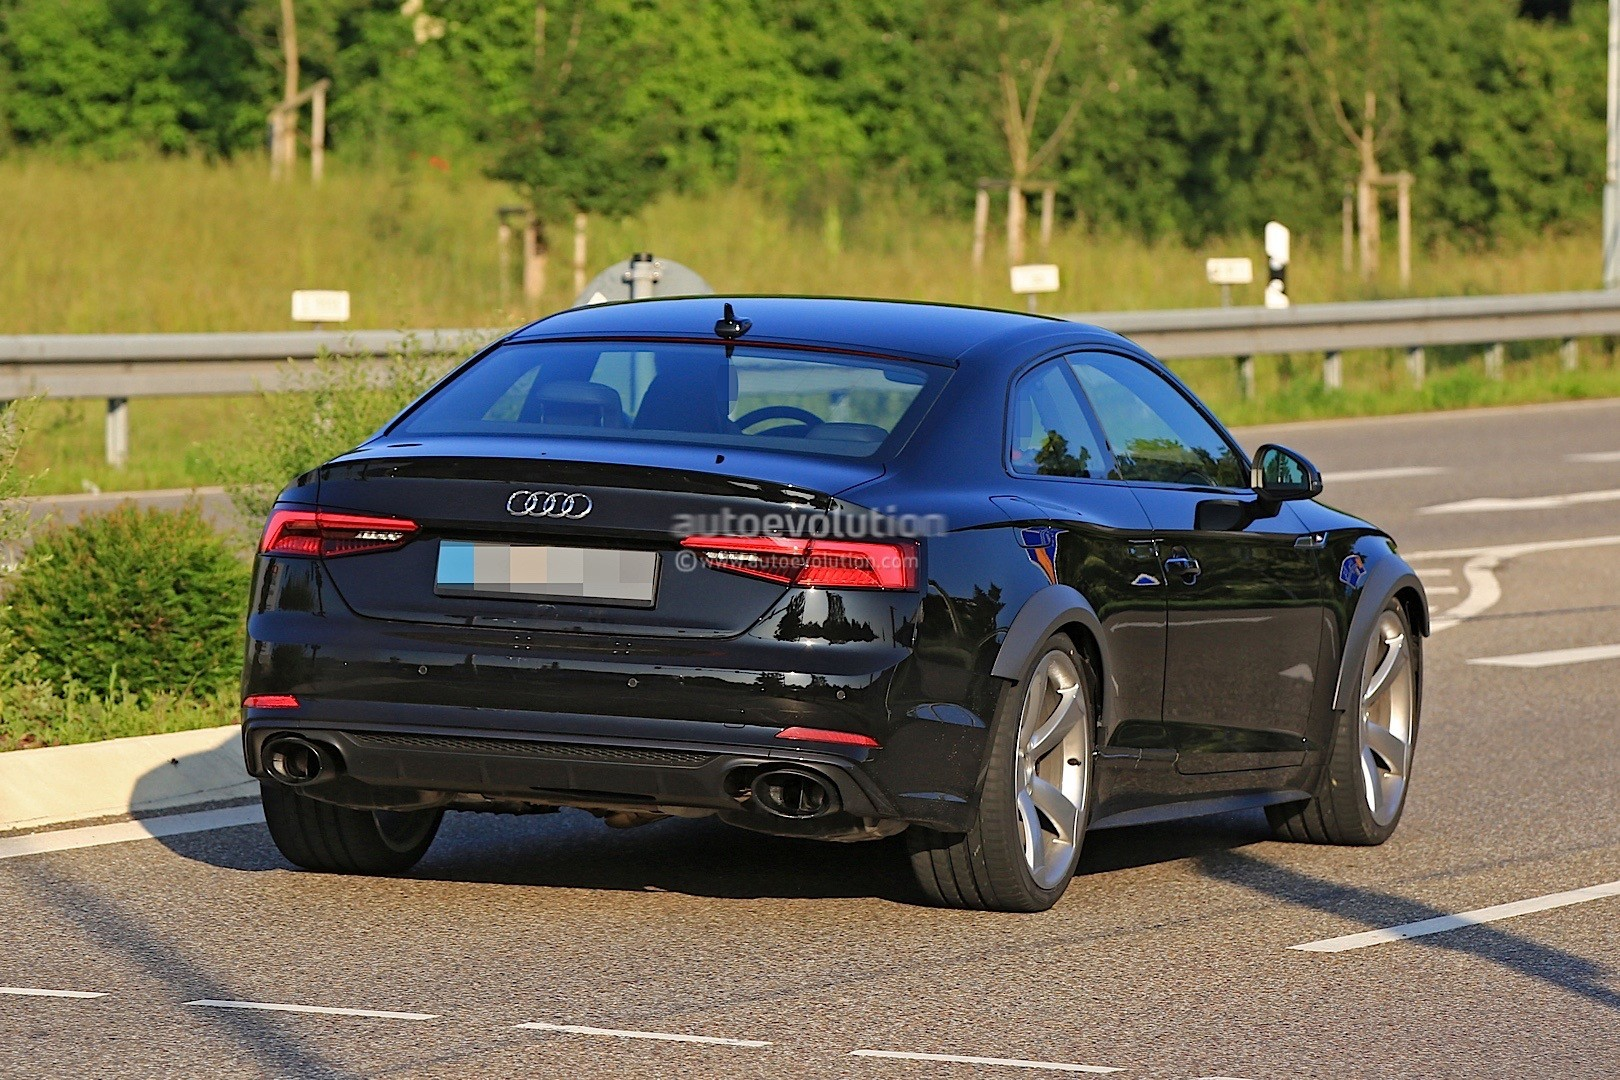 2018 Audi Rs5 Coupe Test Mule Spied In Audi S5 Coupe Overalls